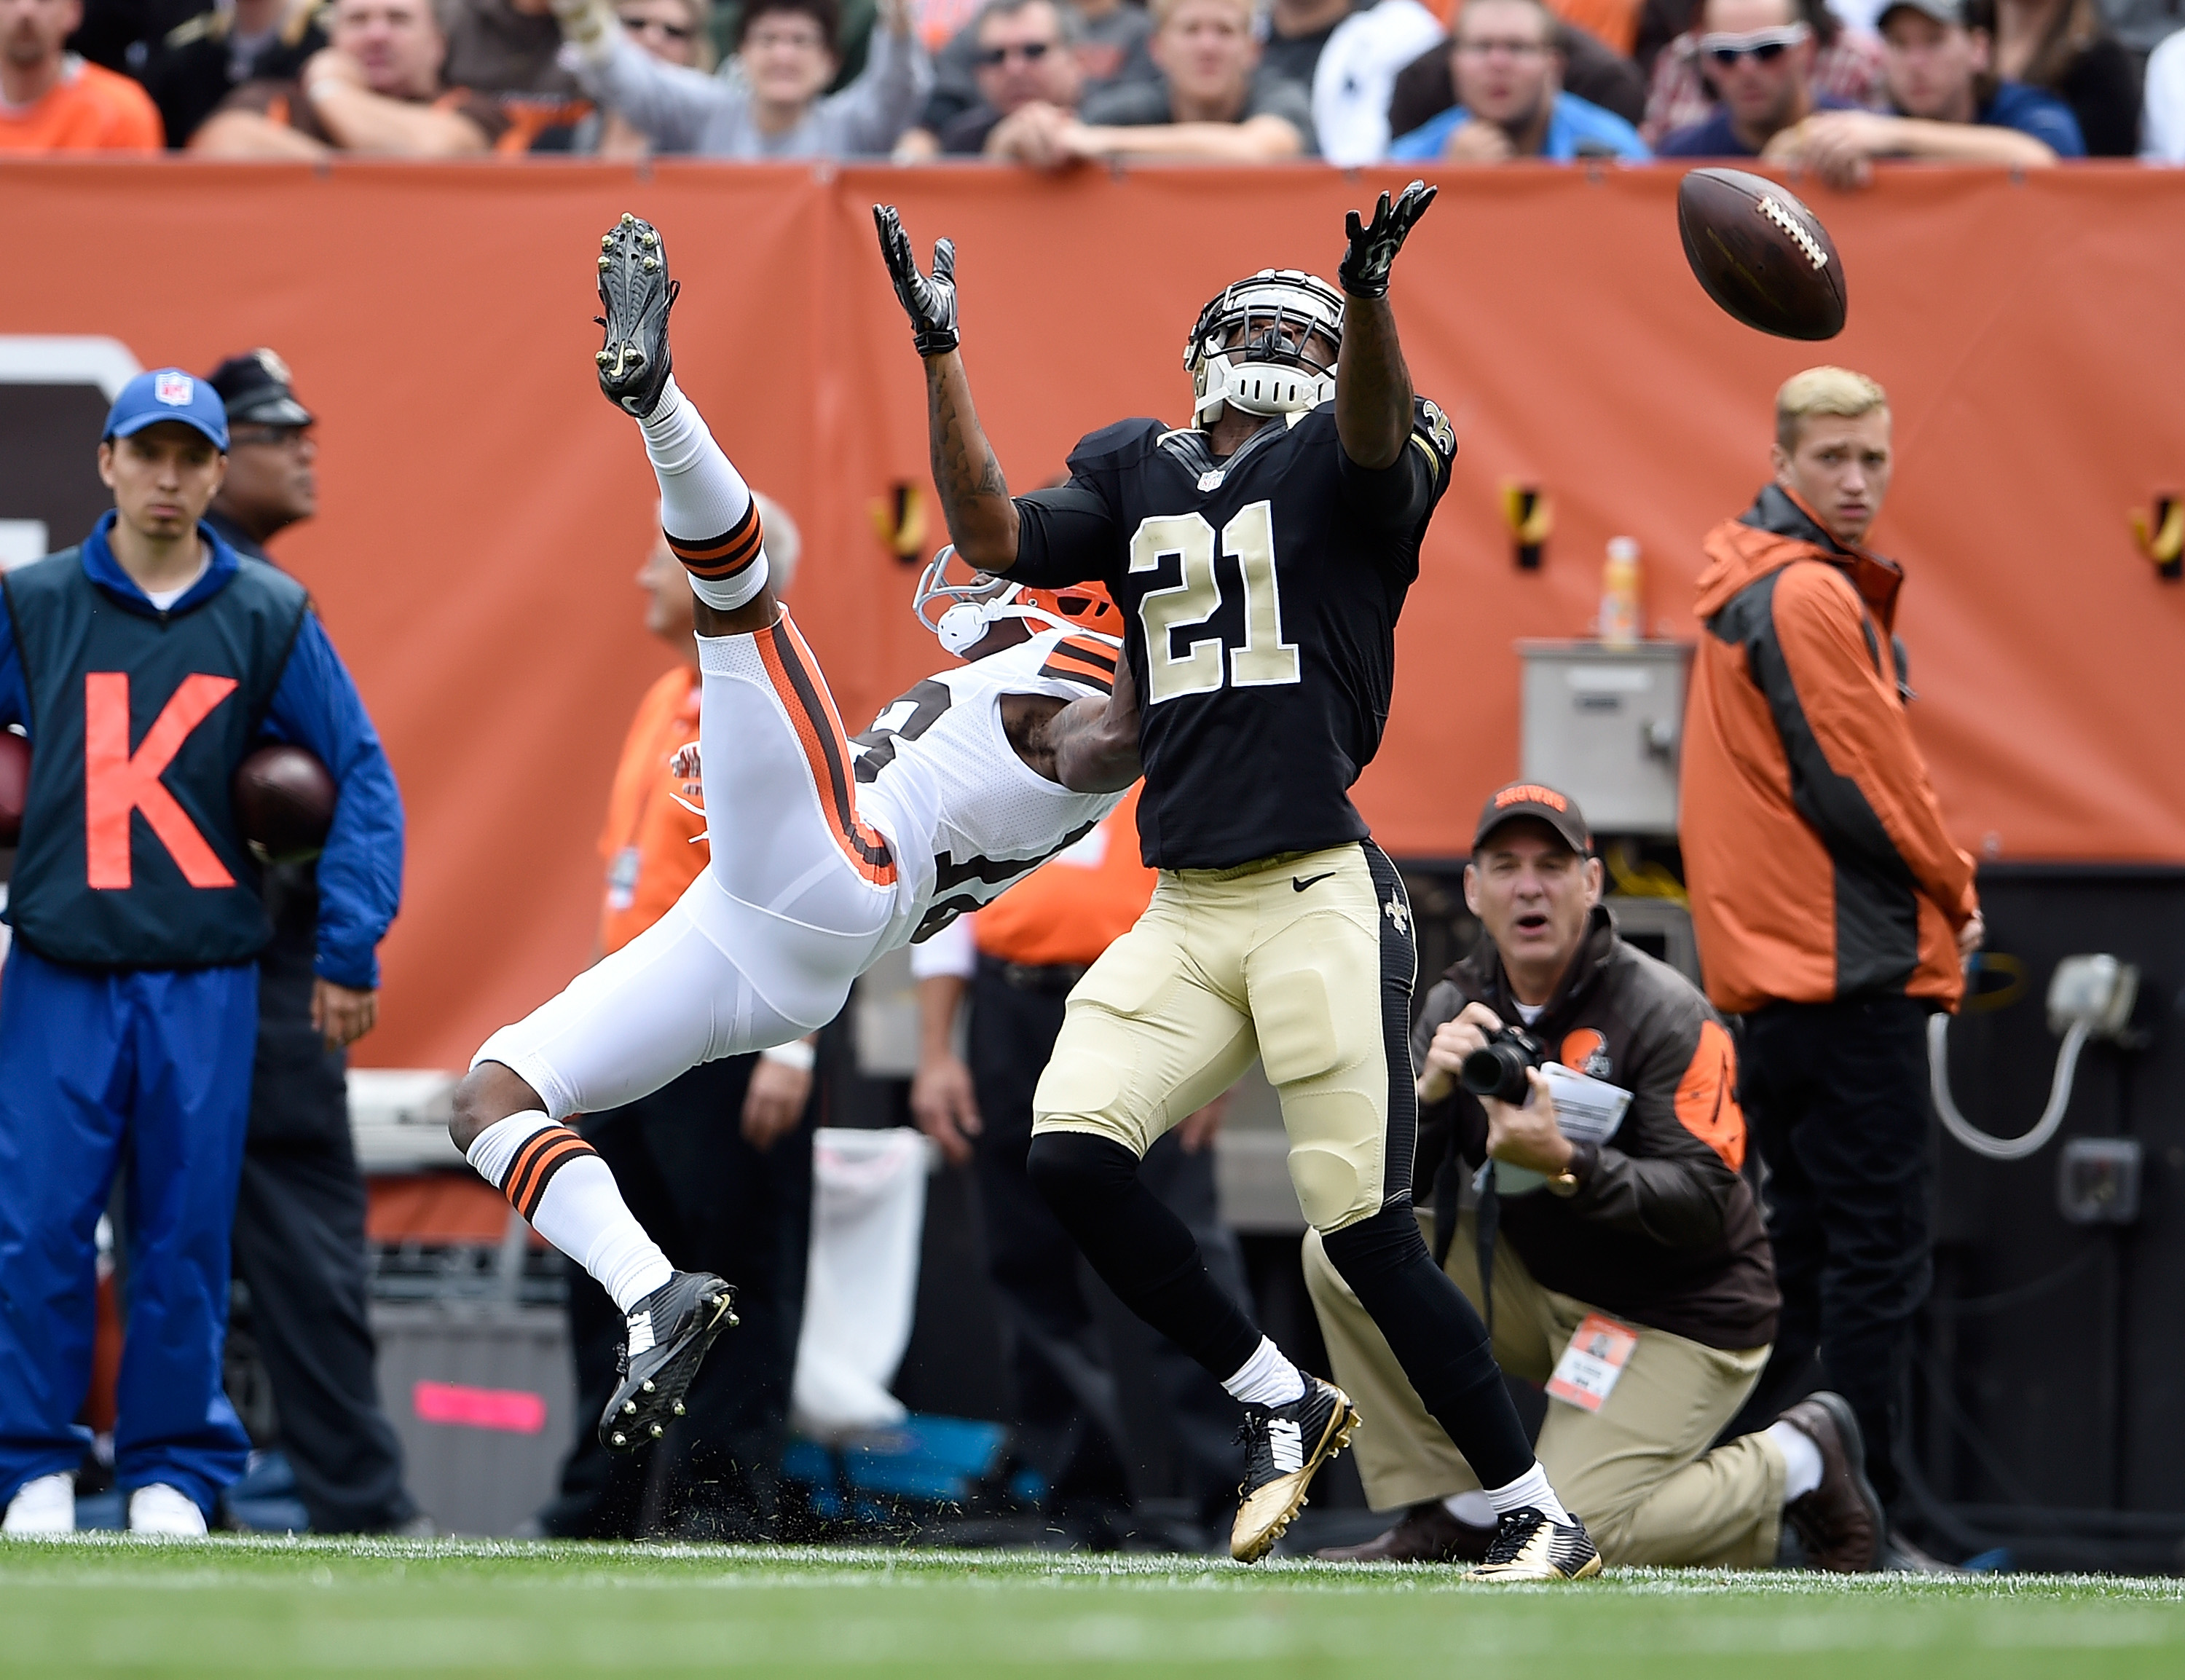 Patrick Robinson #21 of the New Orleans Saints gets called for pass intrench against Taylor Gabriel #18 of the Cleveland Browns during the first quarter at FirstEnergy Stadium on September 14, 2014 in Cleveland, Ohio.  (Jason Miller/Getty Images)